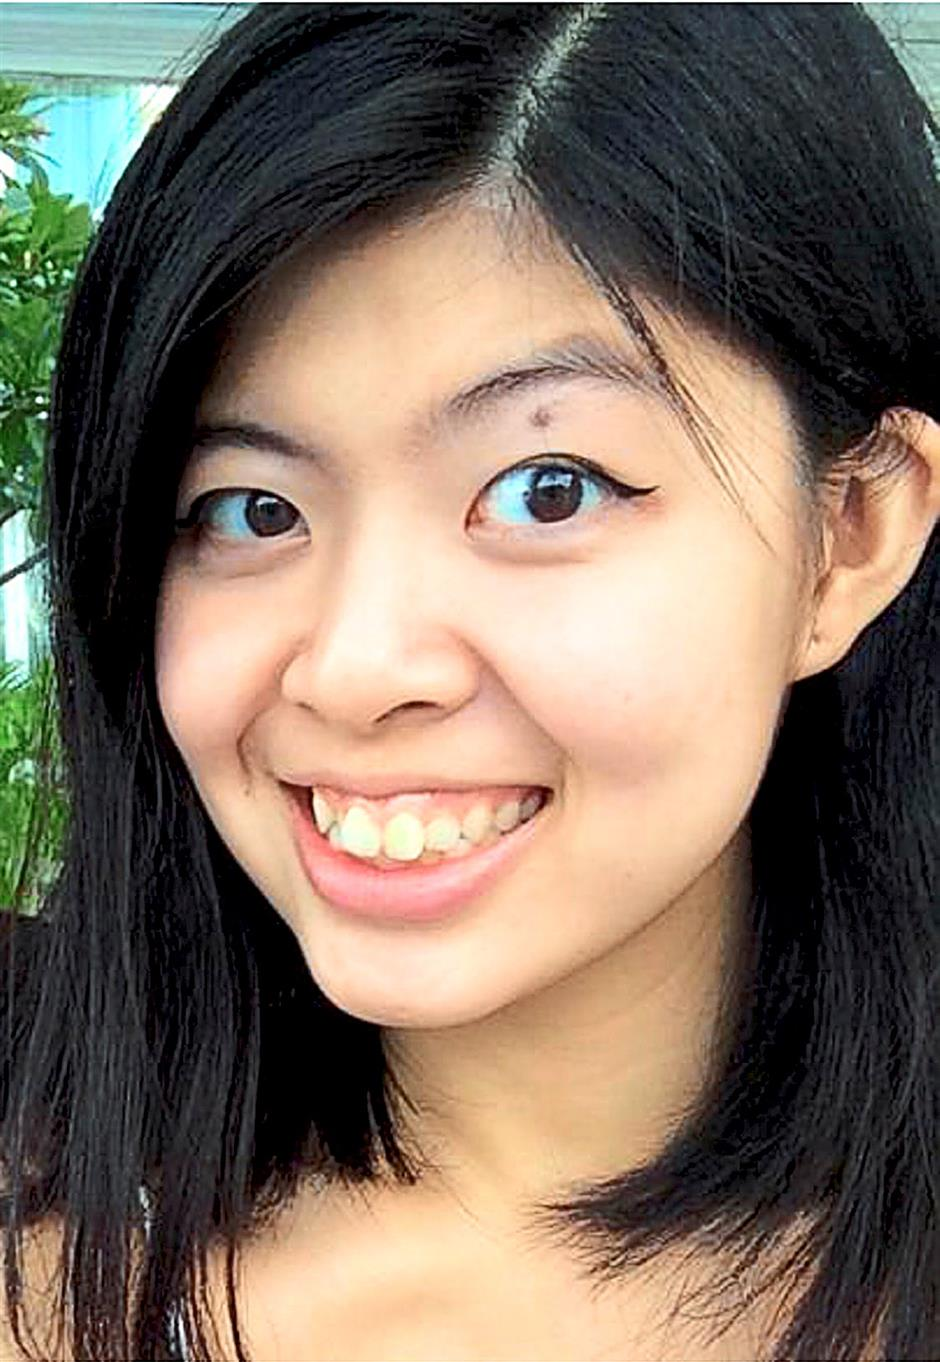 Fong: Says rising costs will influence her career choice after she graduates.